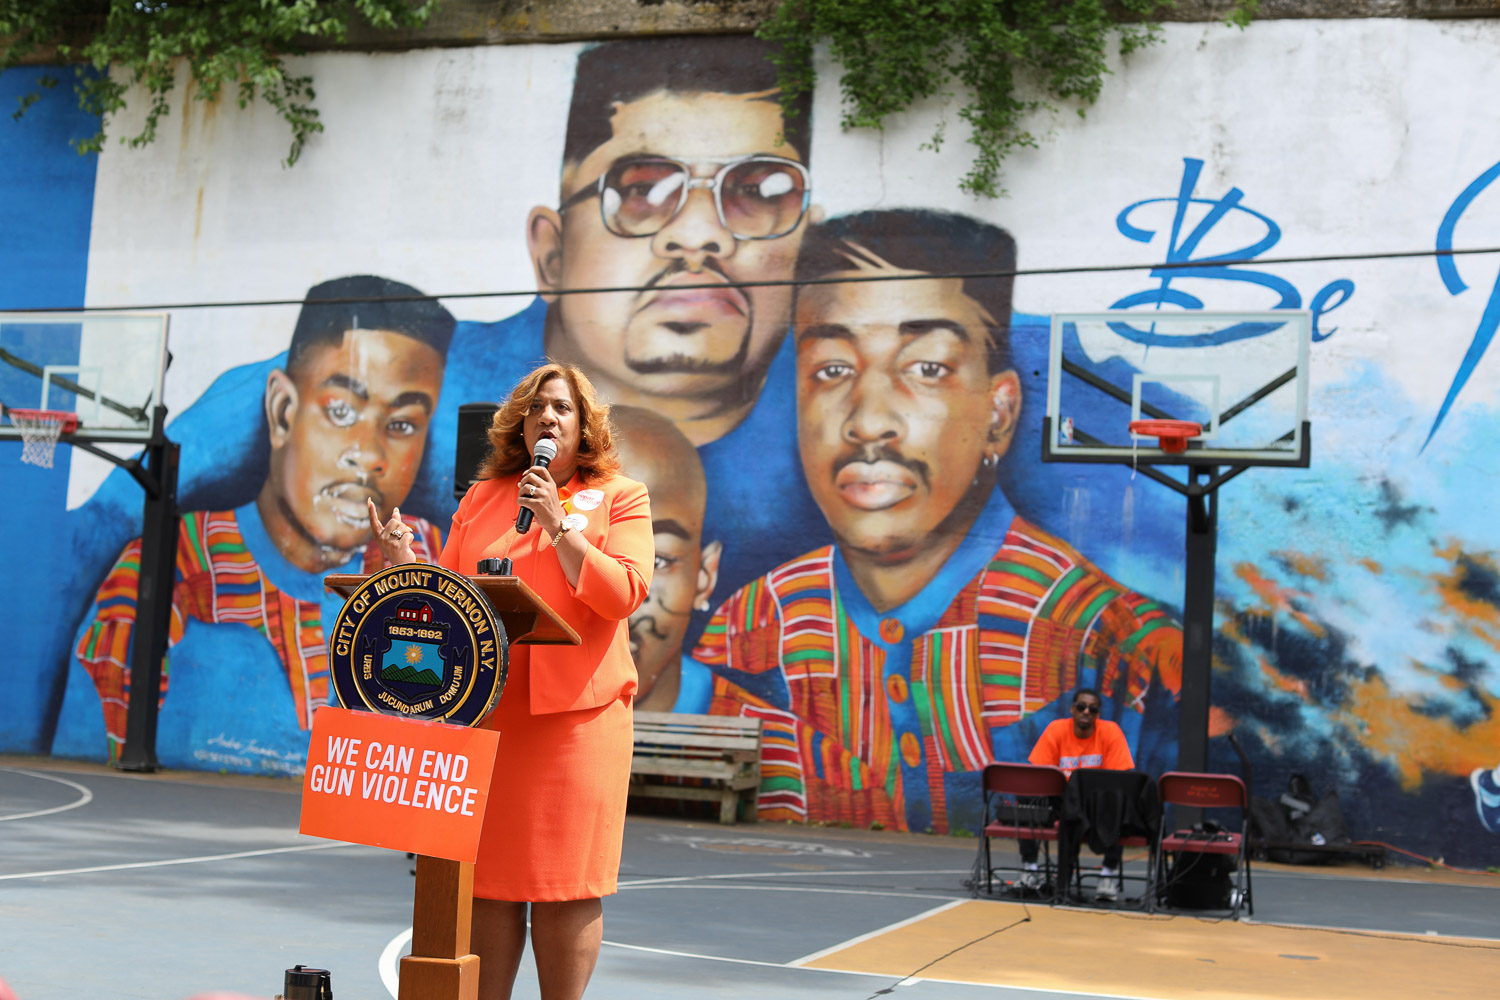 Shawyn Patterson-Howard Speak On Safety Tactics In Mount Vernon At The Moms Demand Action for Gun Sense in America Gun, Violence Awareness Week at Heavy D Memorial Park in Mount Vernon June 9, 2019. Photography by Tyrone Z. McCants / Zire Photography